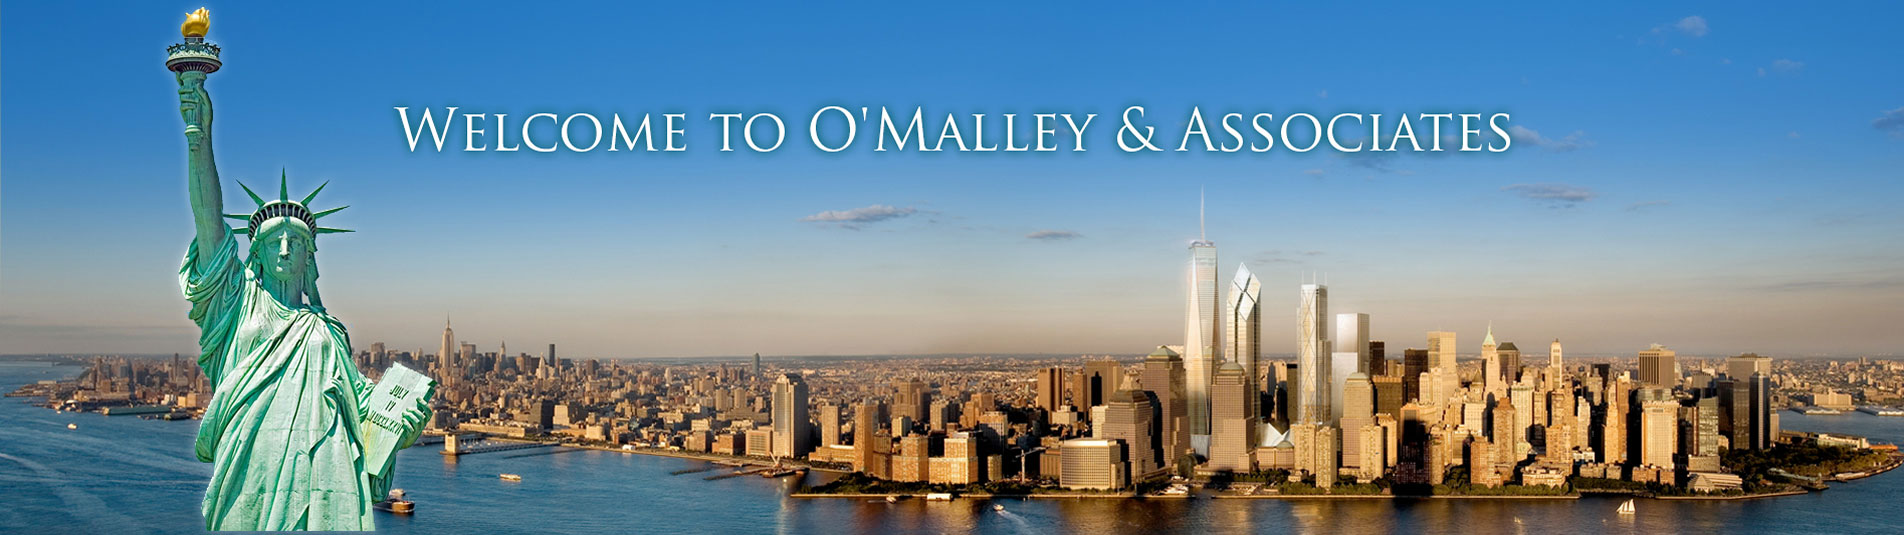 Omalley-banner51